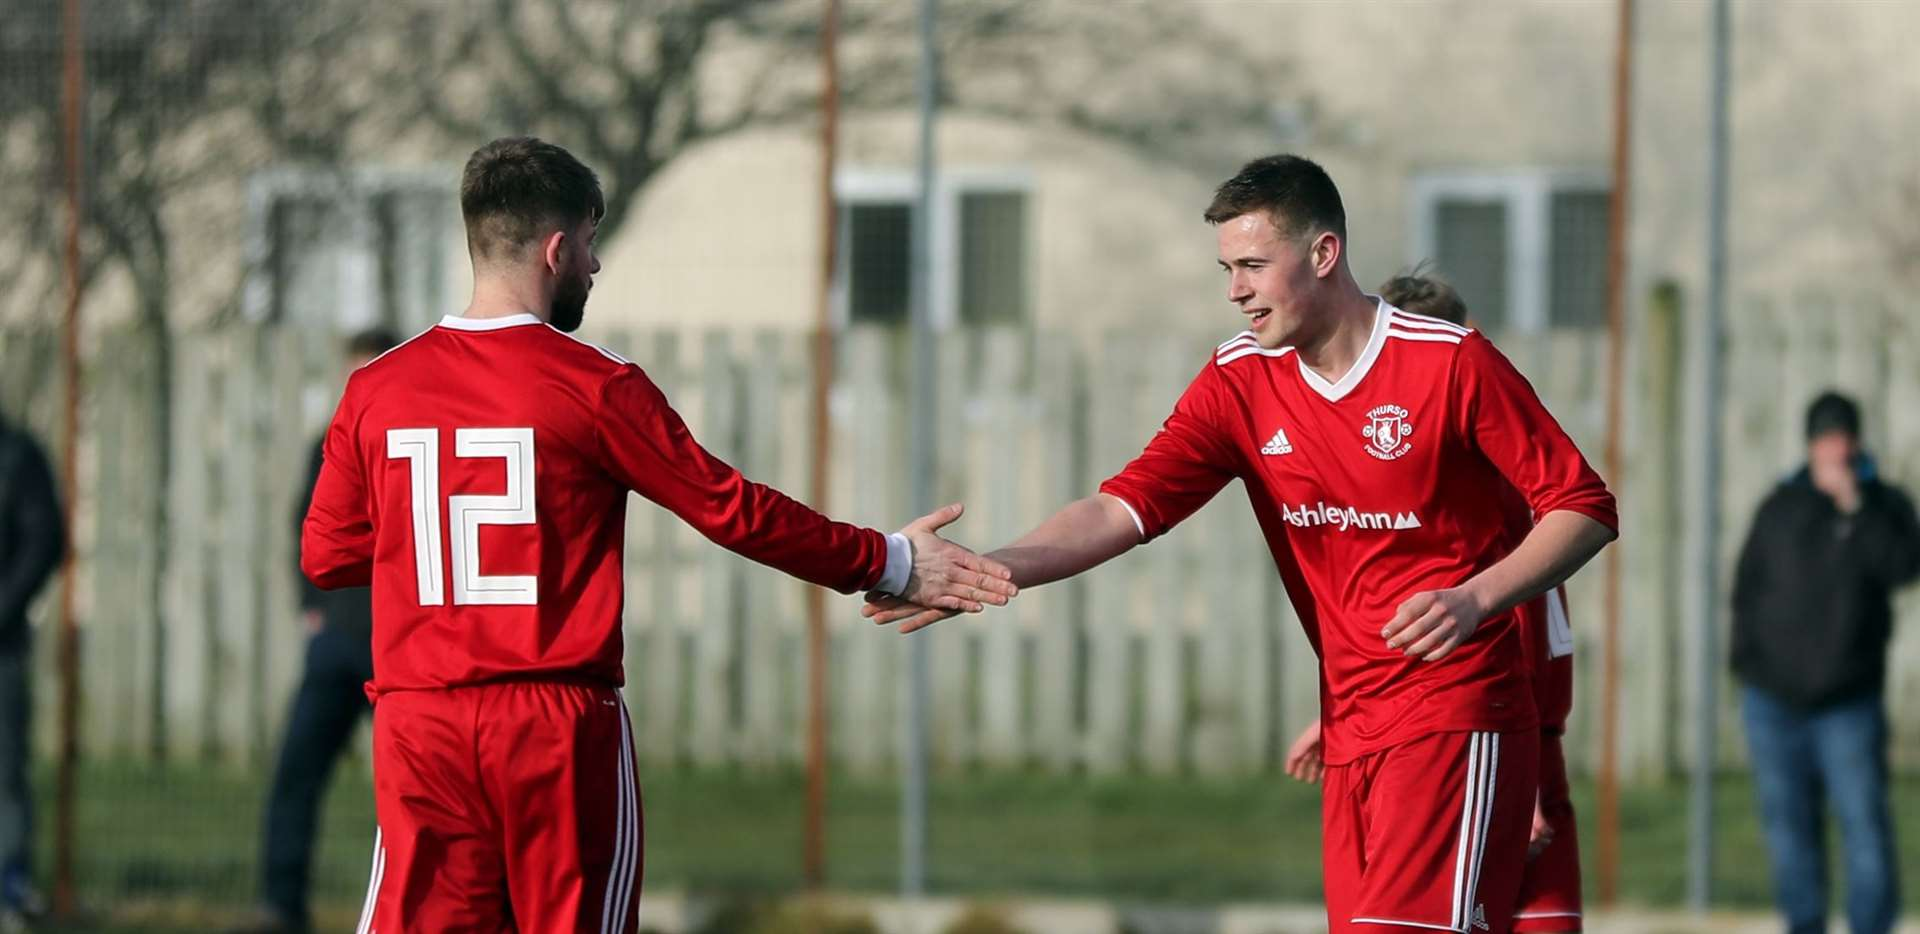 Michael Petrie (left) congratulates Conor Trueman on scoring for Thurso in the runaway win against Bonar. Picture: James Gunn